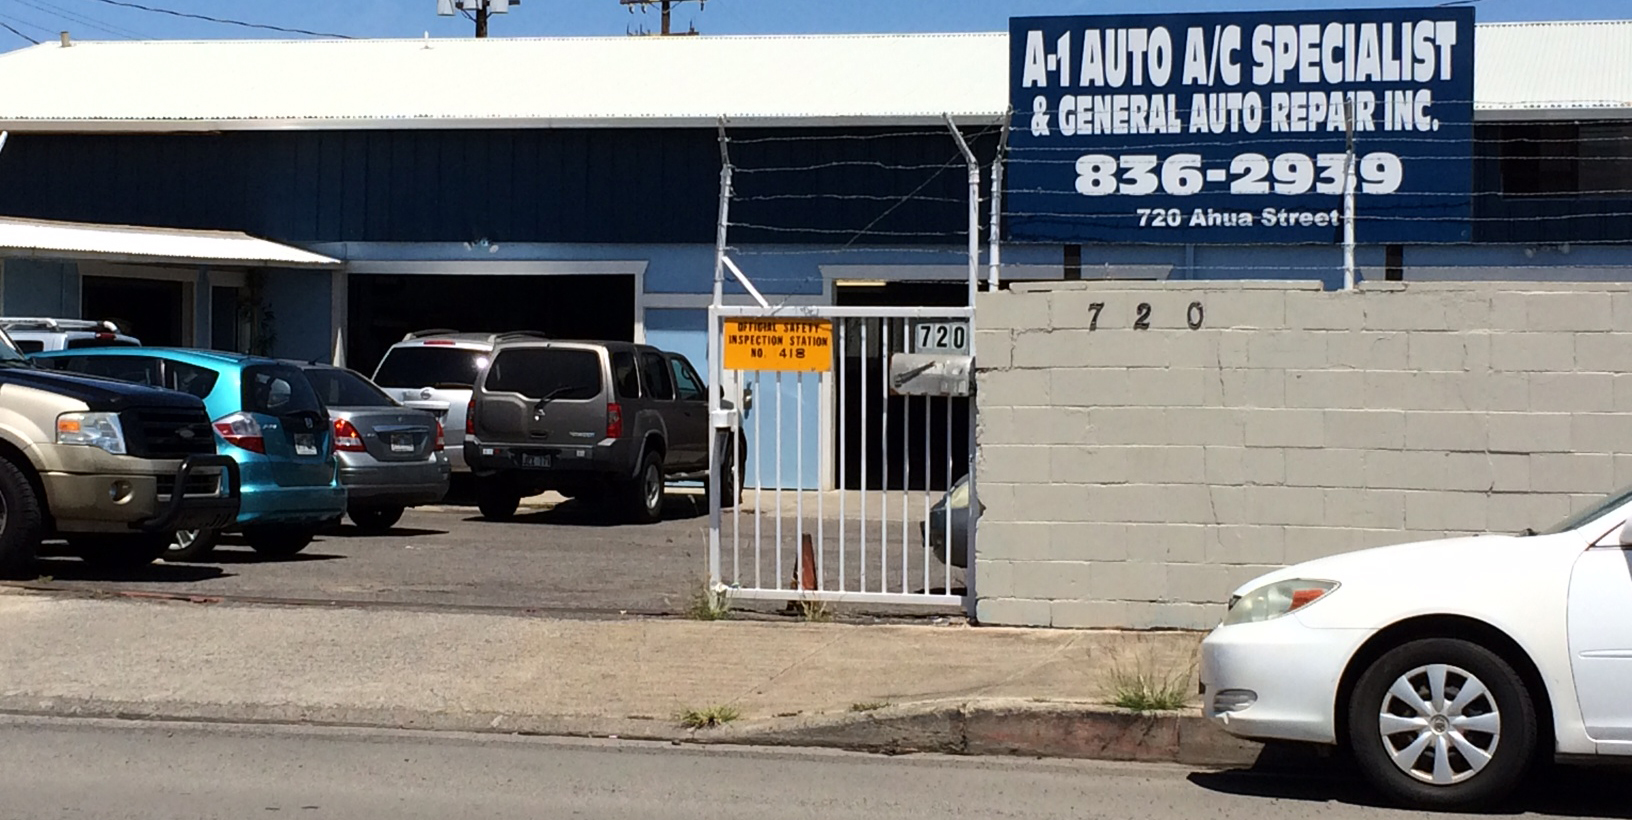 Auto repair mechanic smiles in Honolulu, HI